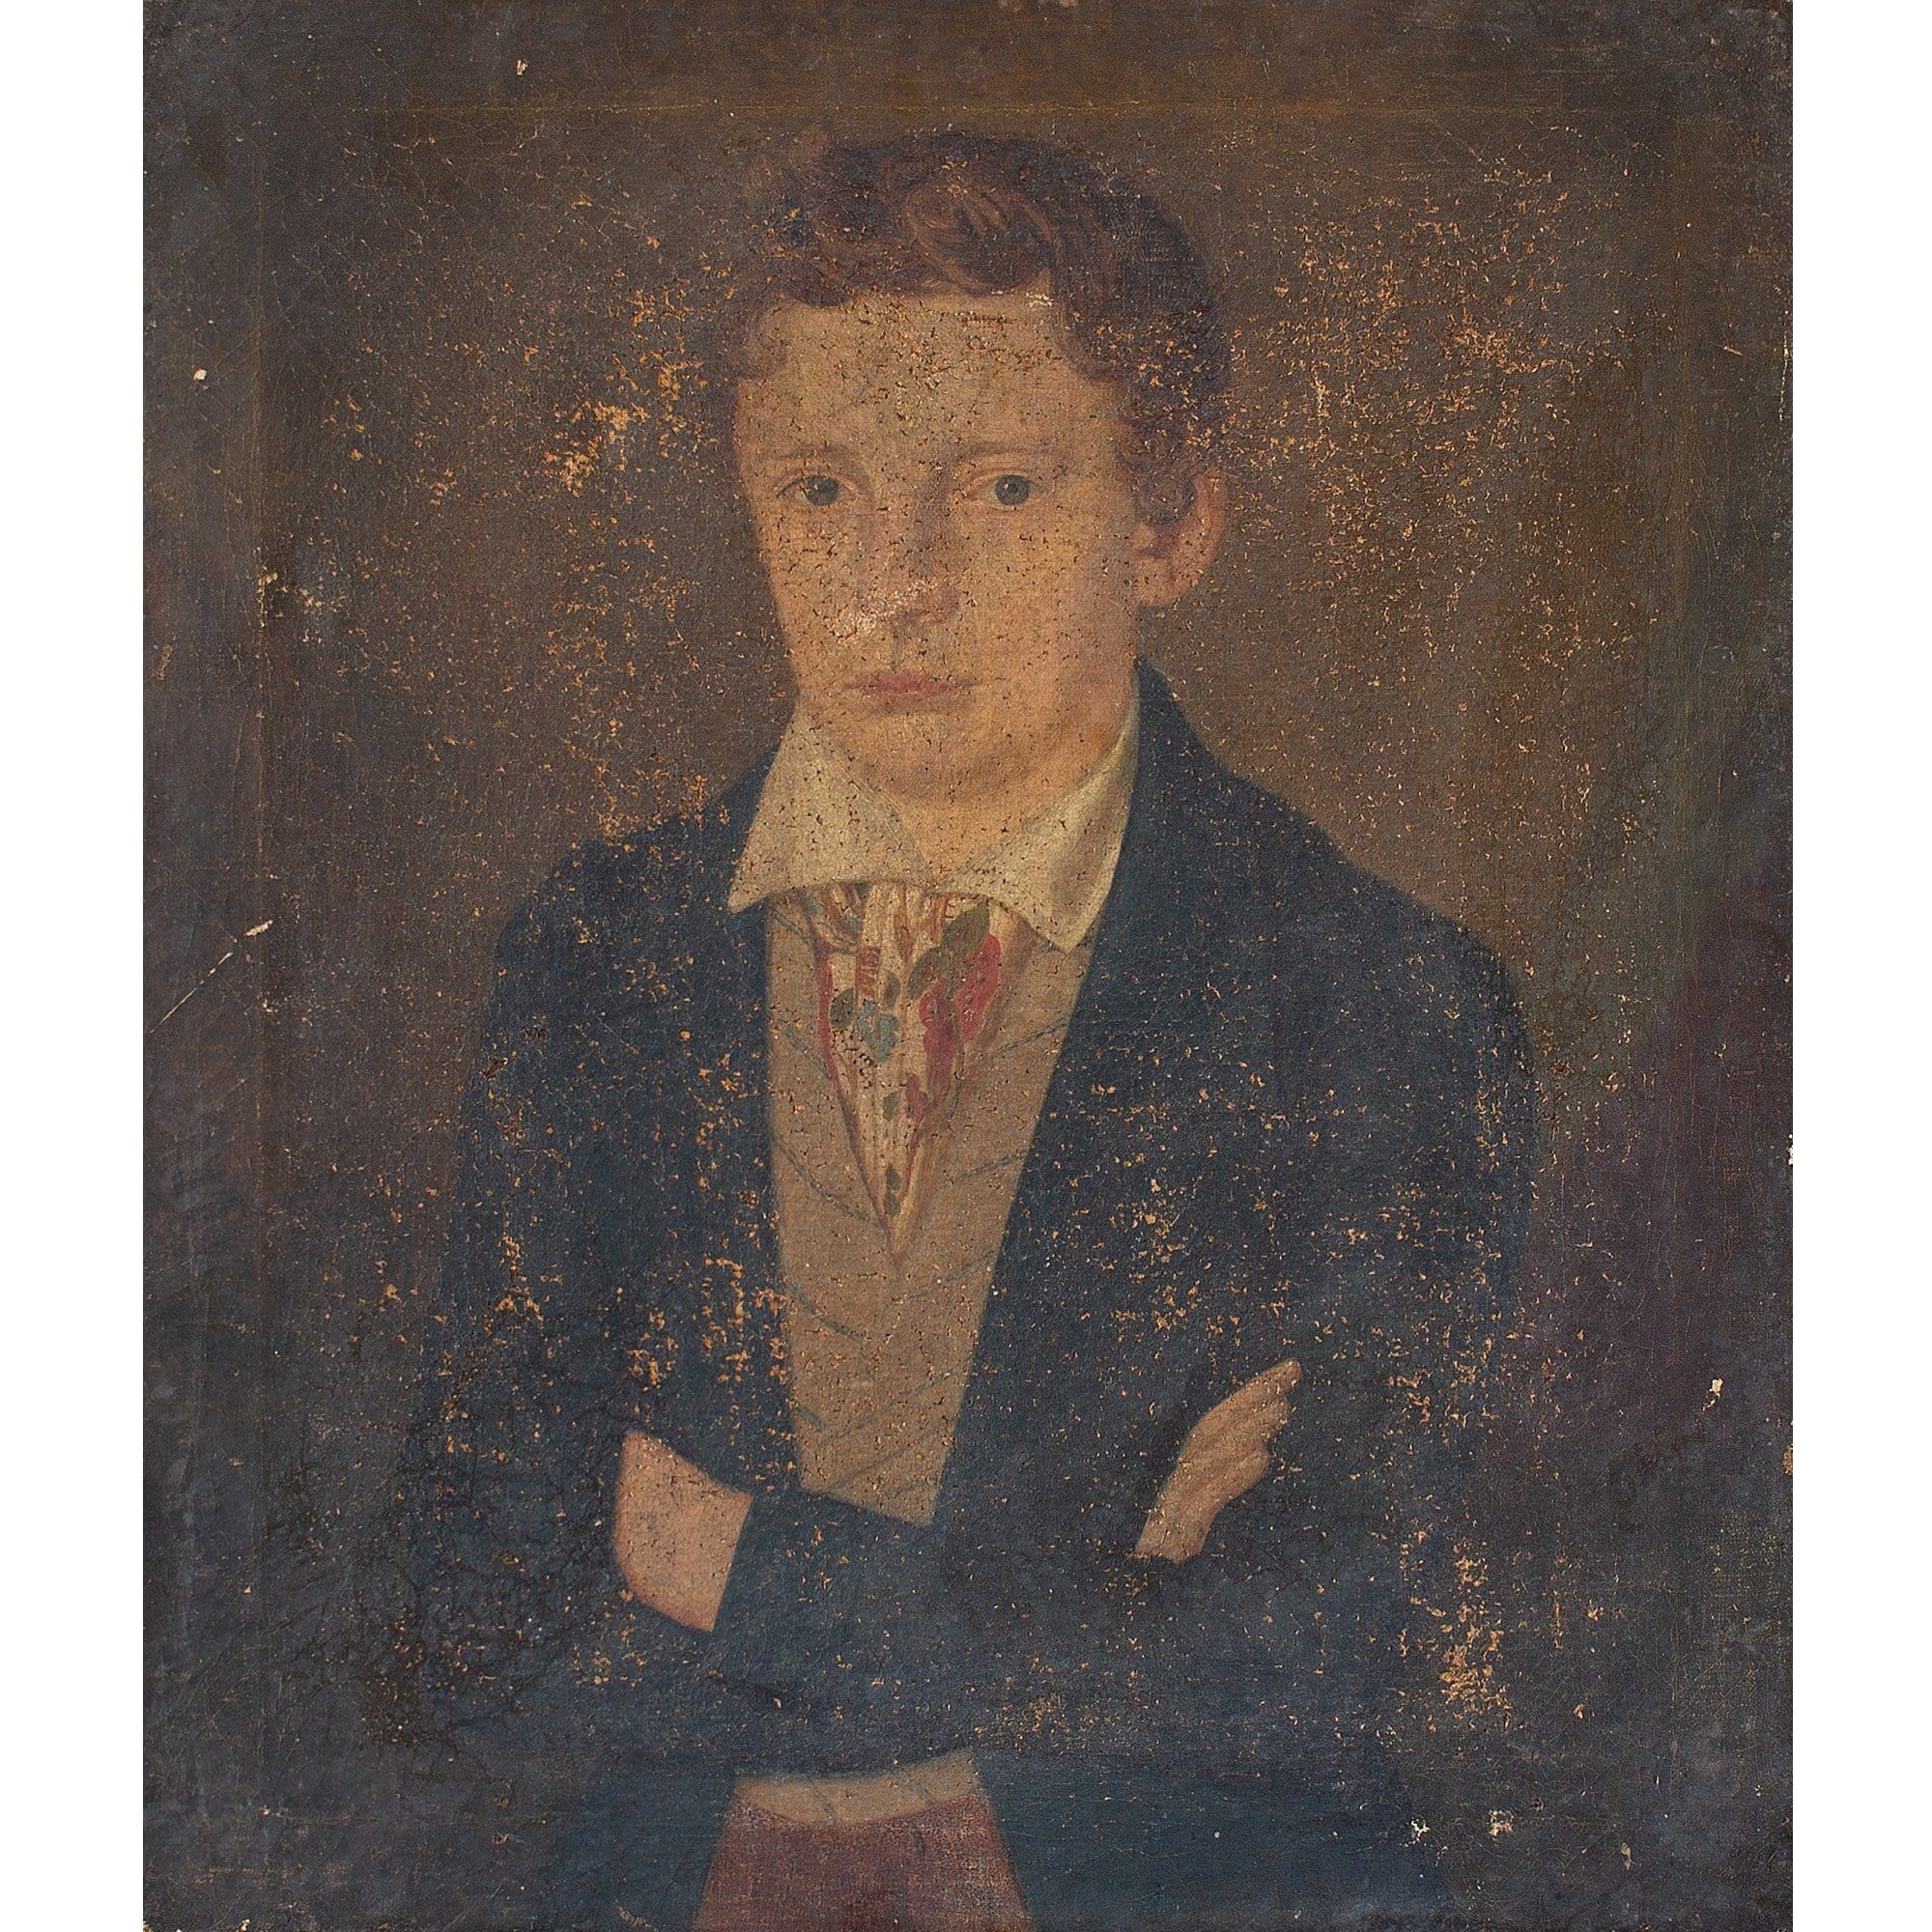 19th-Century French School Portrait Of A Young Man With A Patterned Cravat